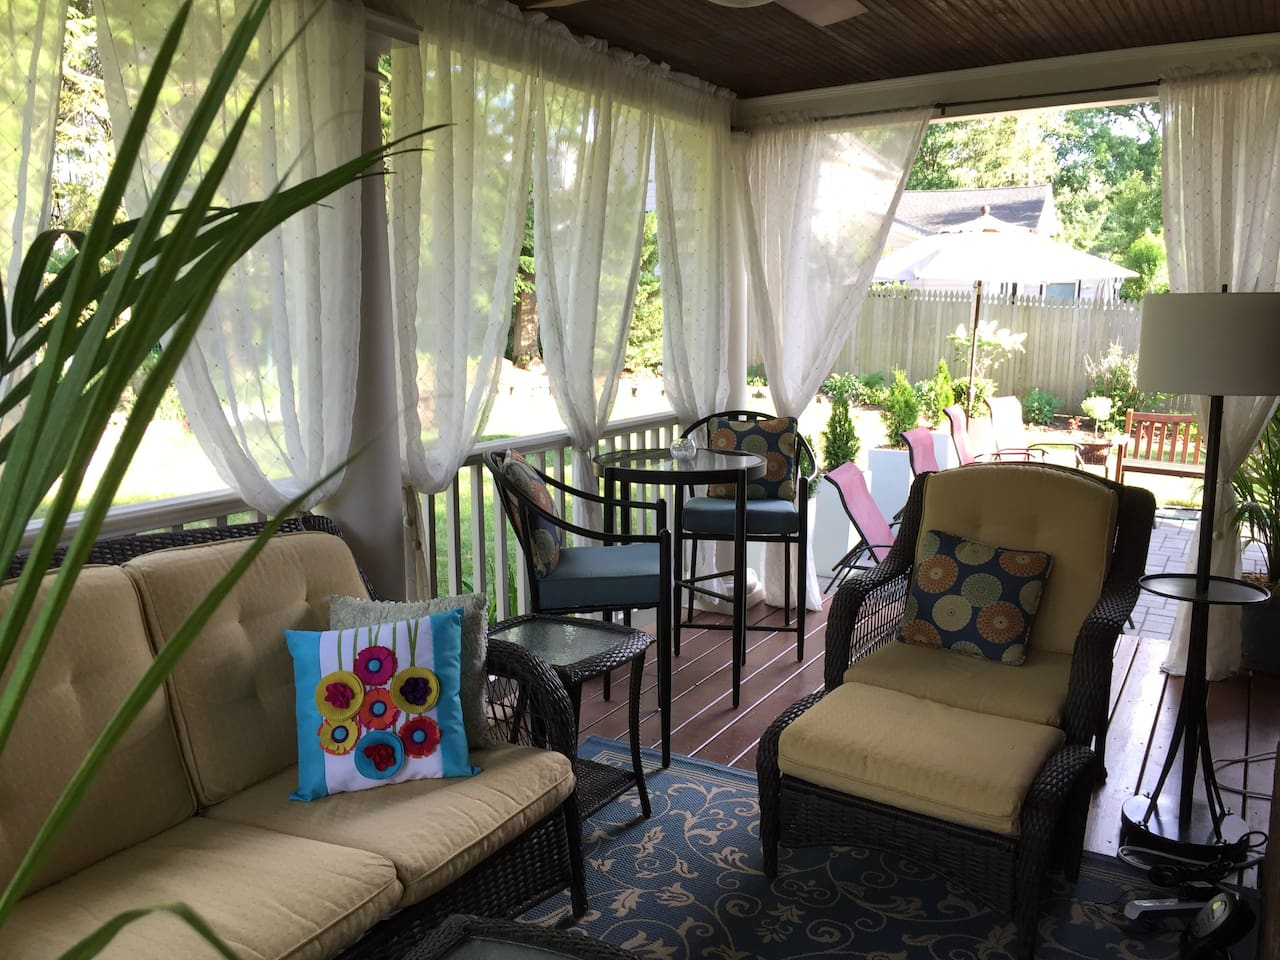 Outdoor porch to relax